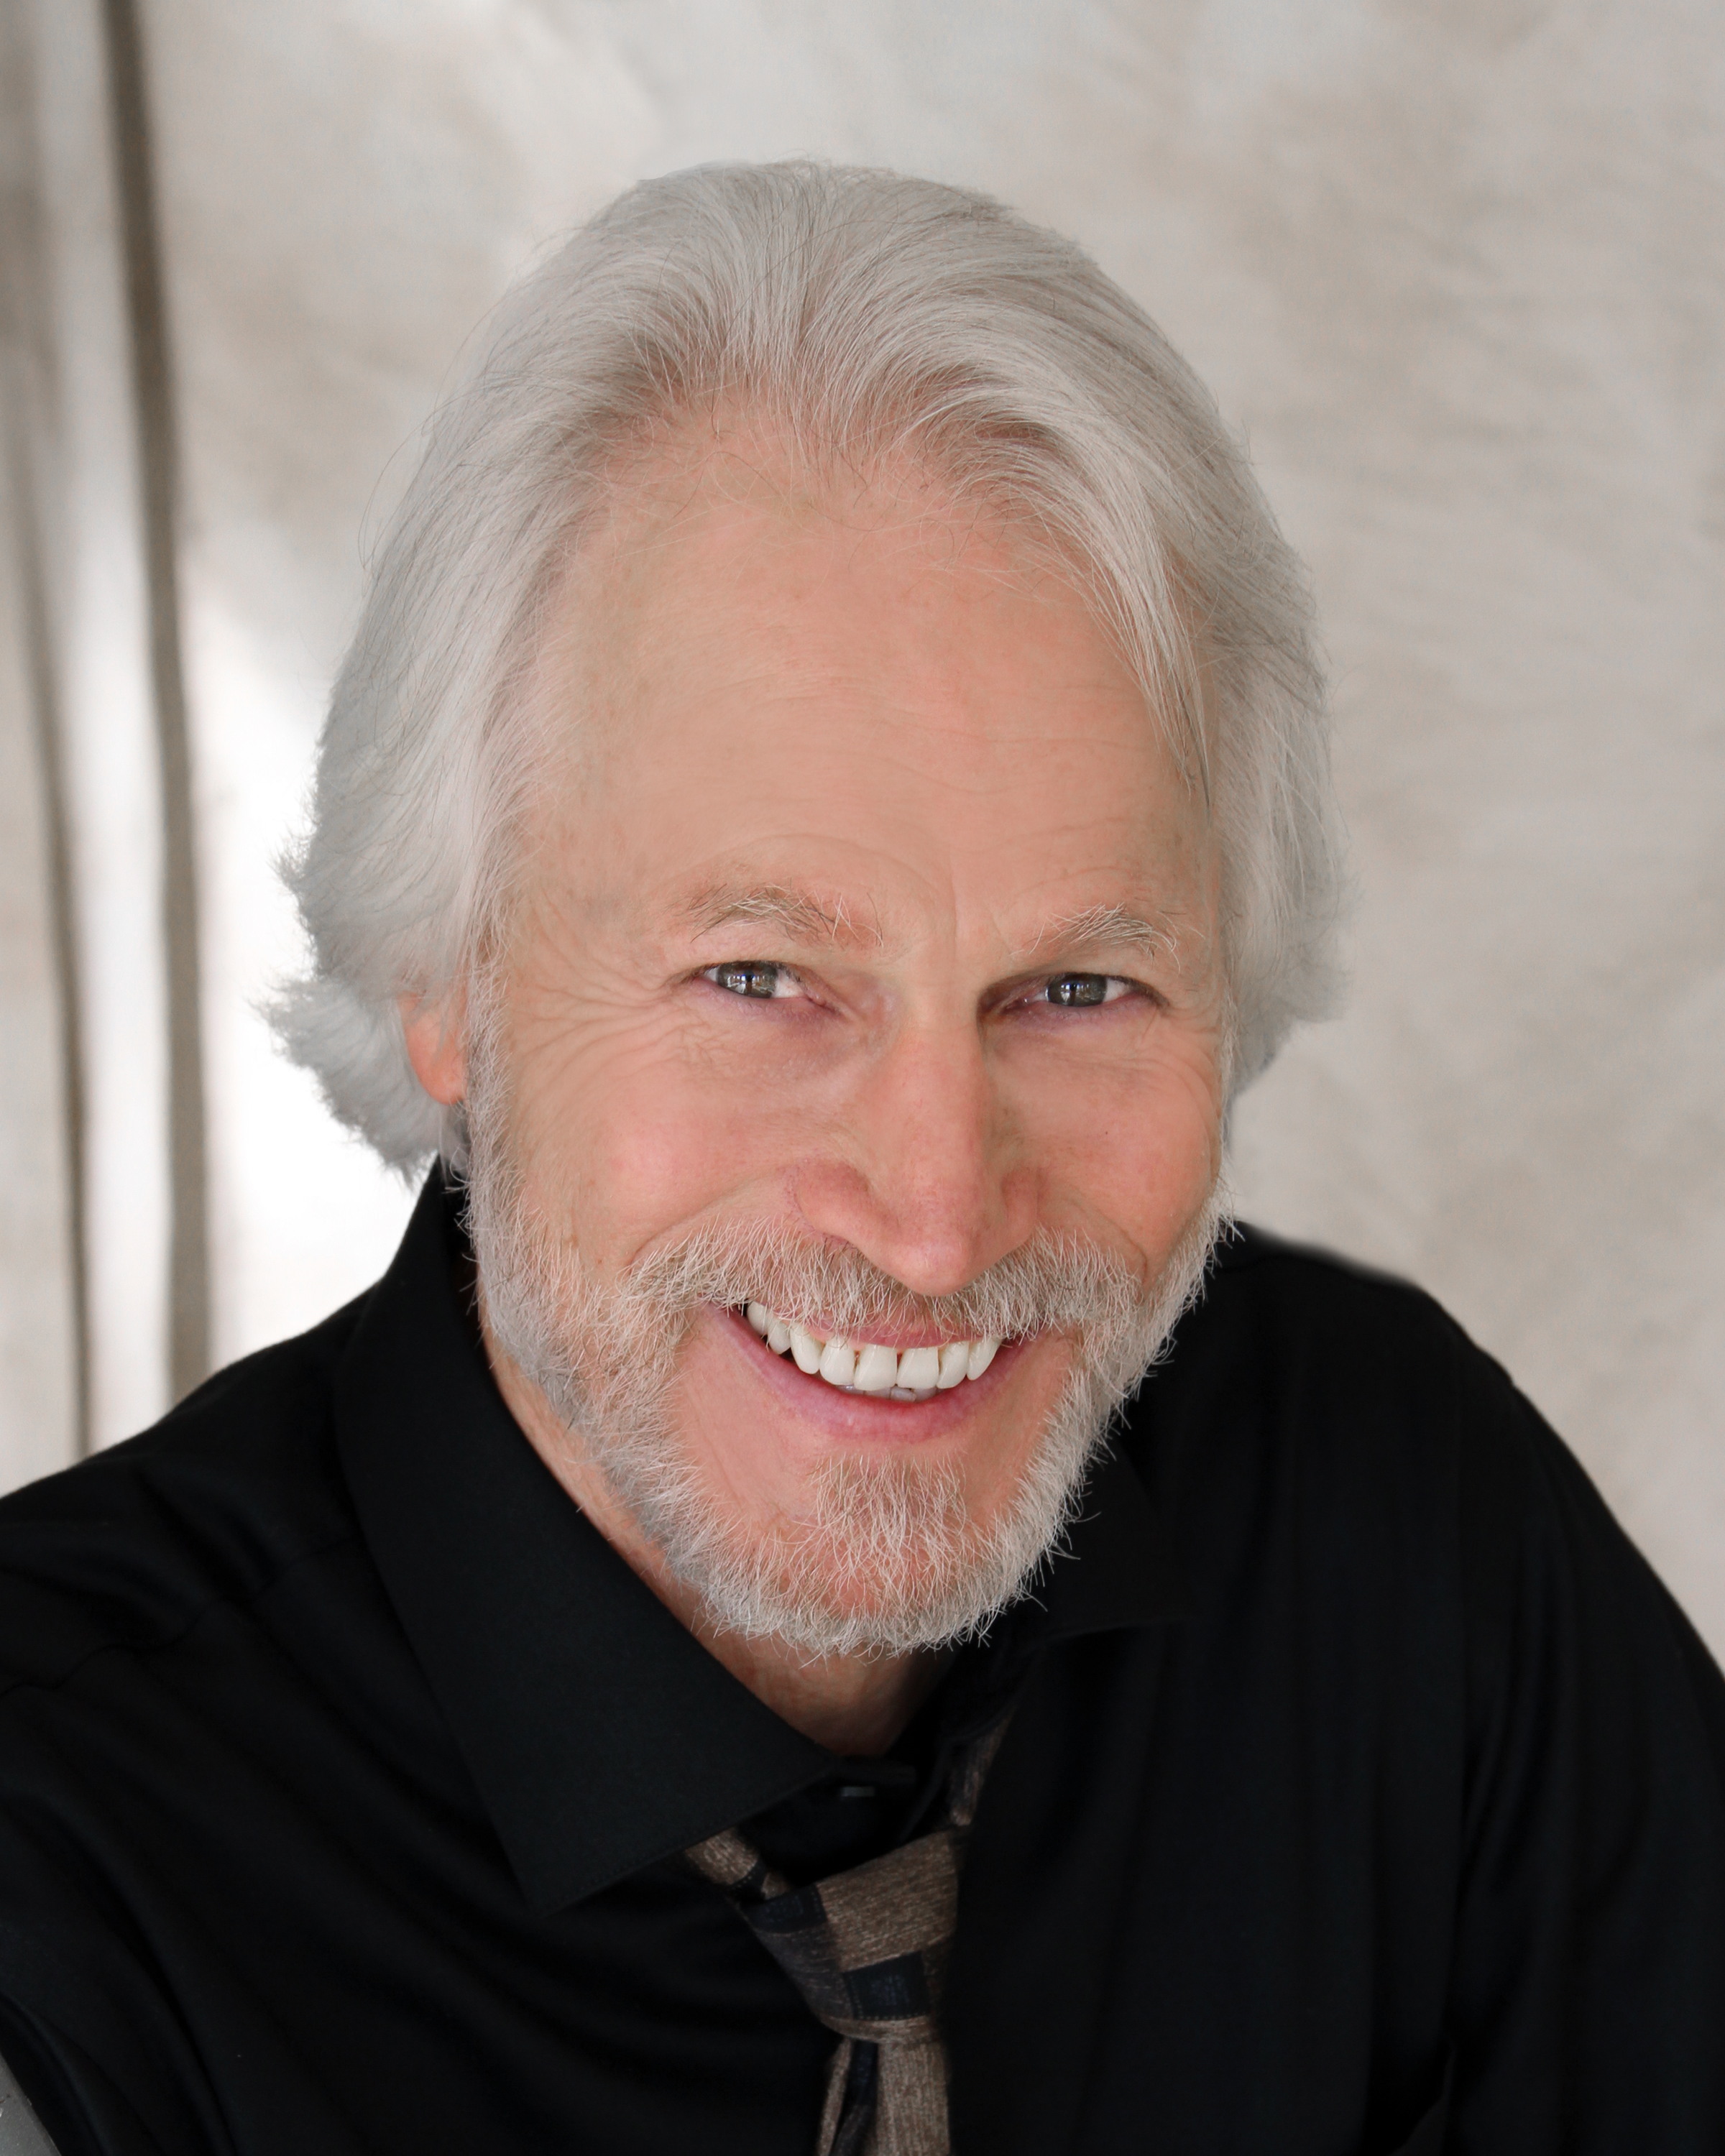 Warriors Come Out And Play Song: Michael Beck (The VH Interview